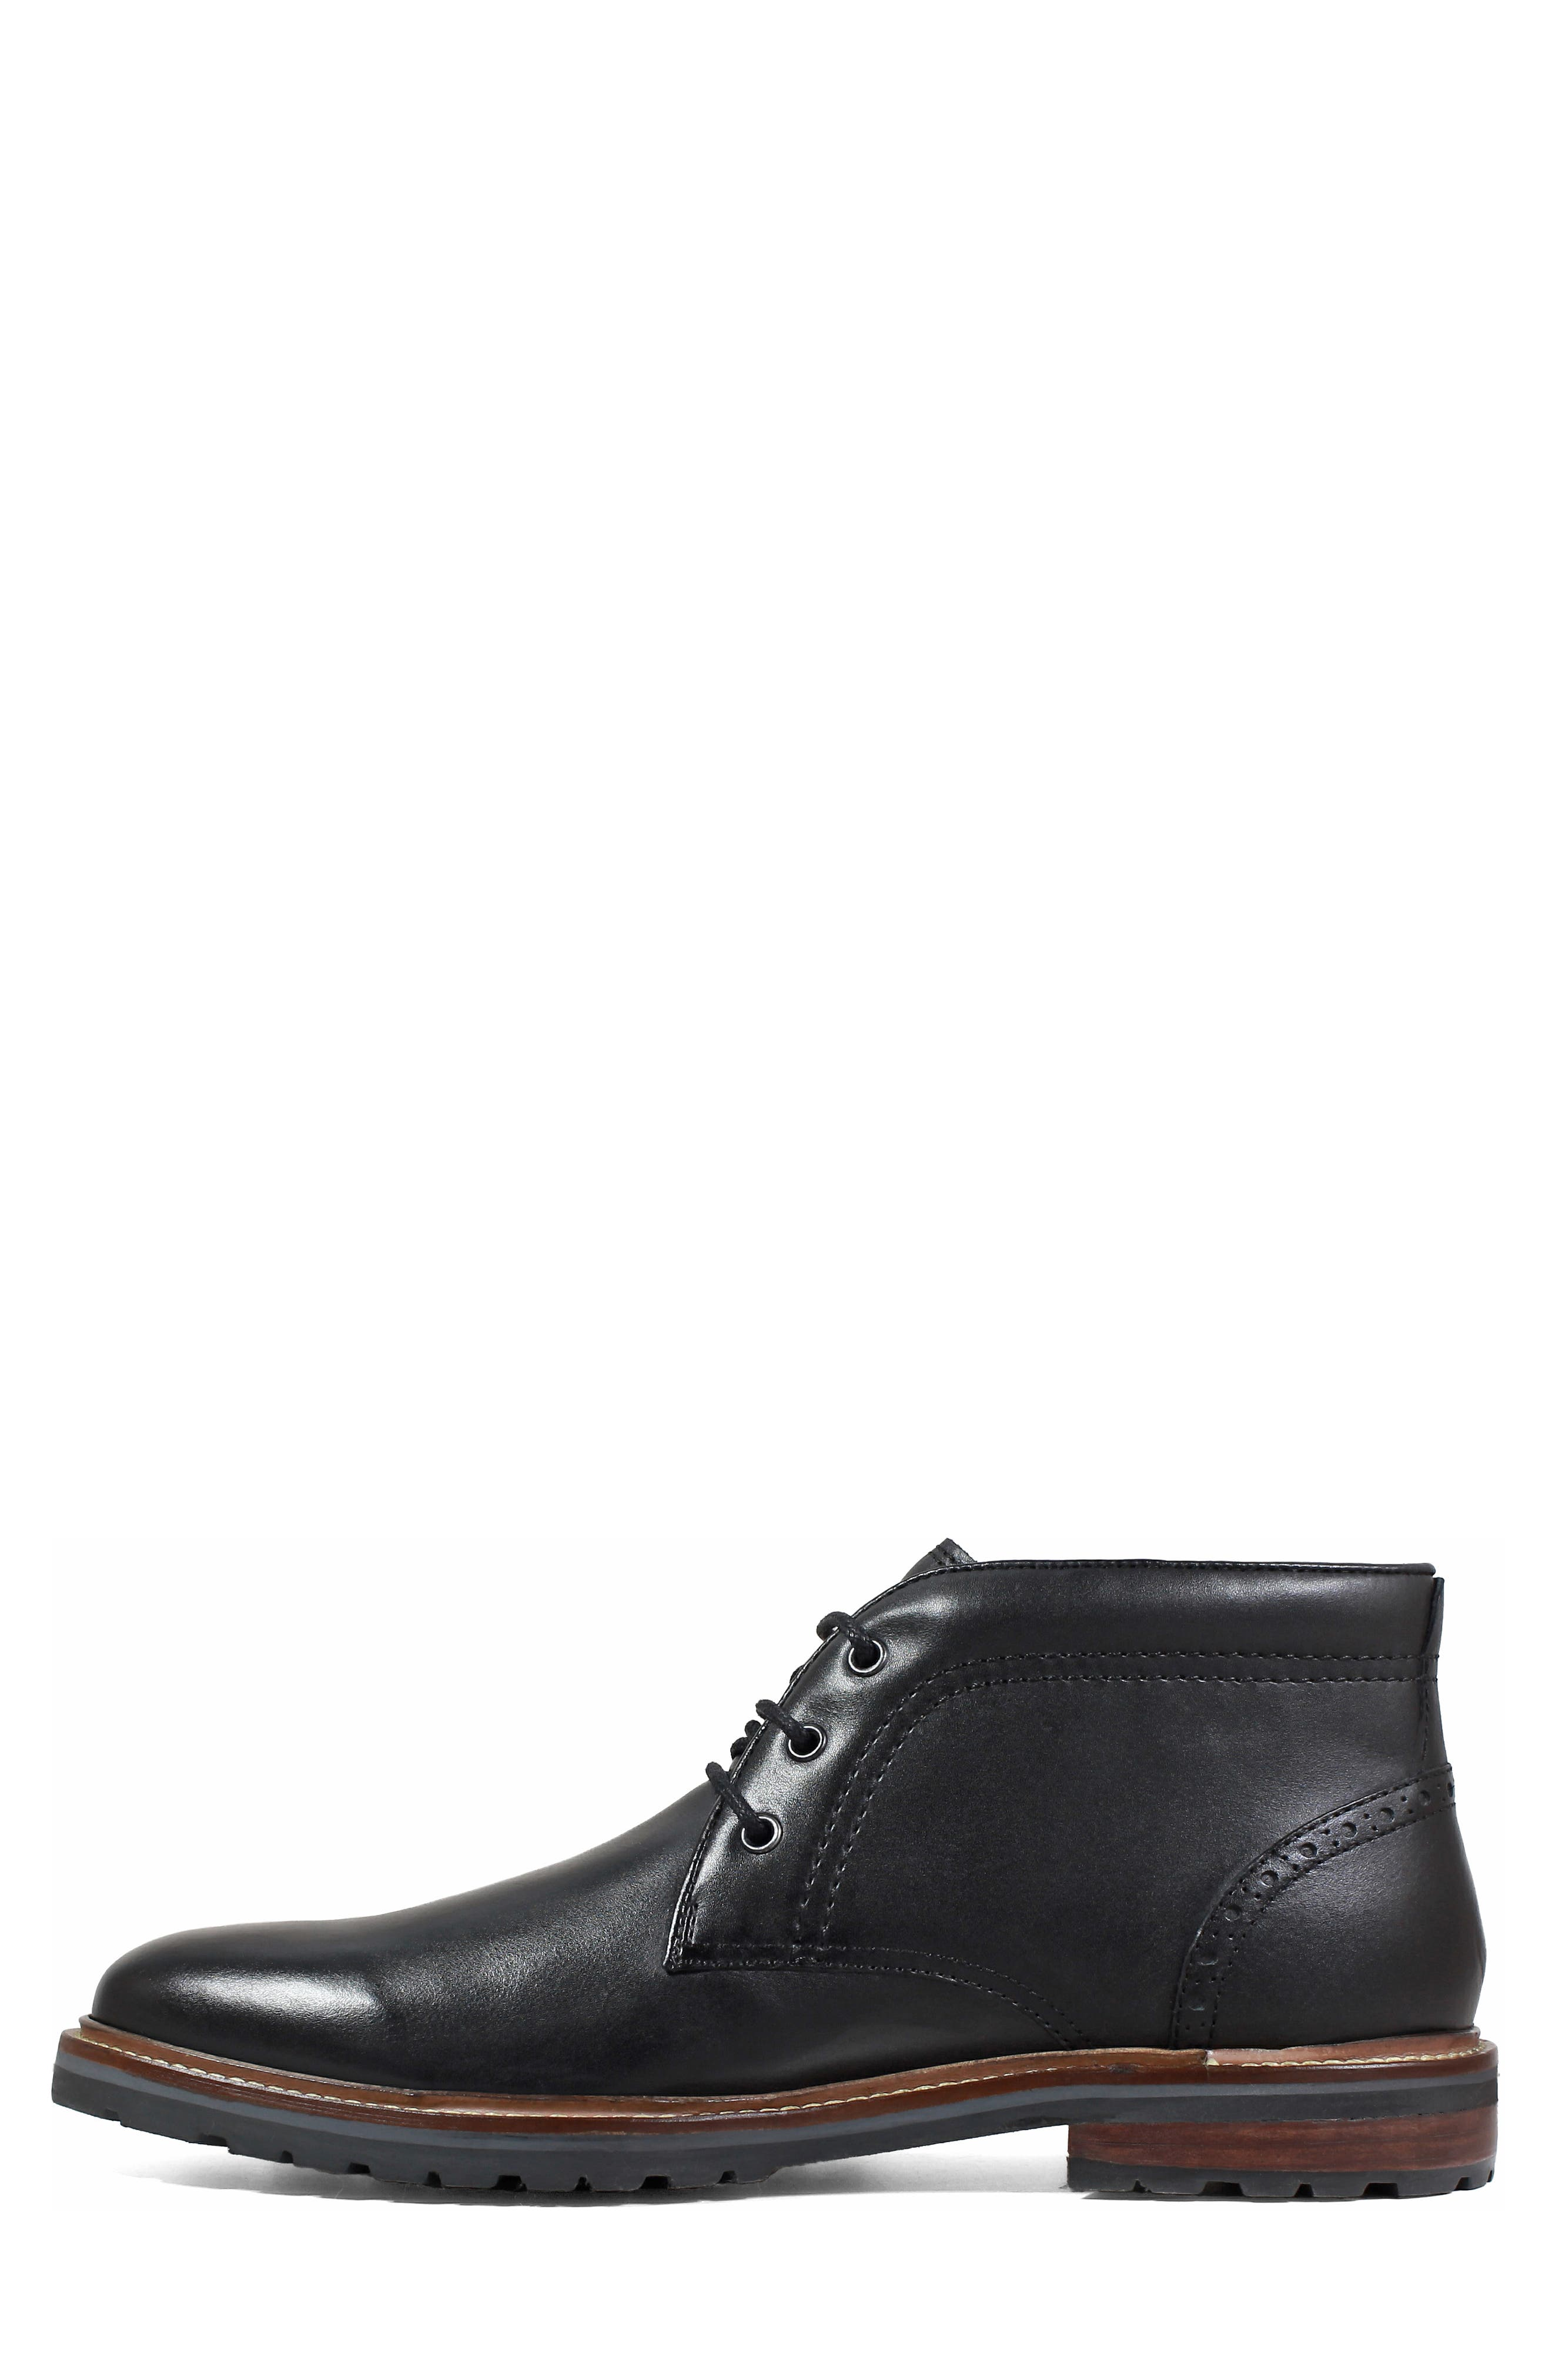 Estabrook Lugged Chukka Boot,                             Alternate thumbnail 8, color,                             BLACK LEATHER